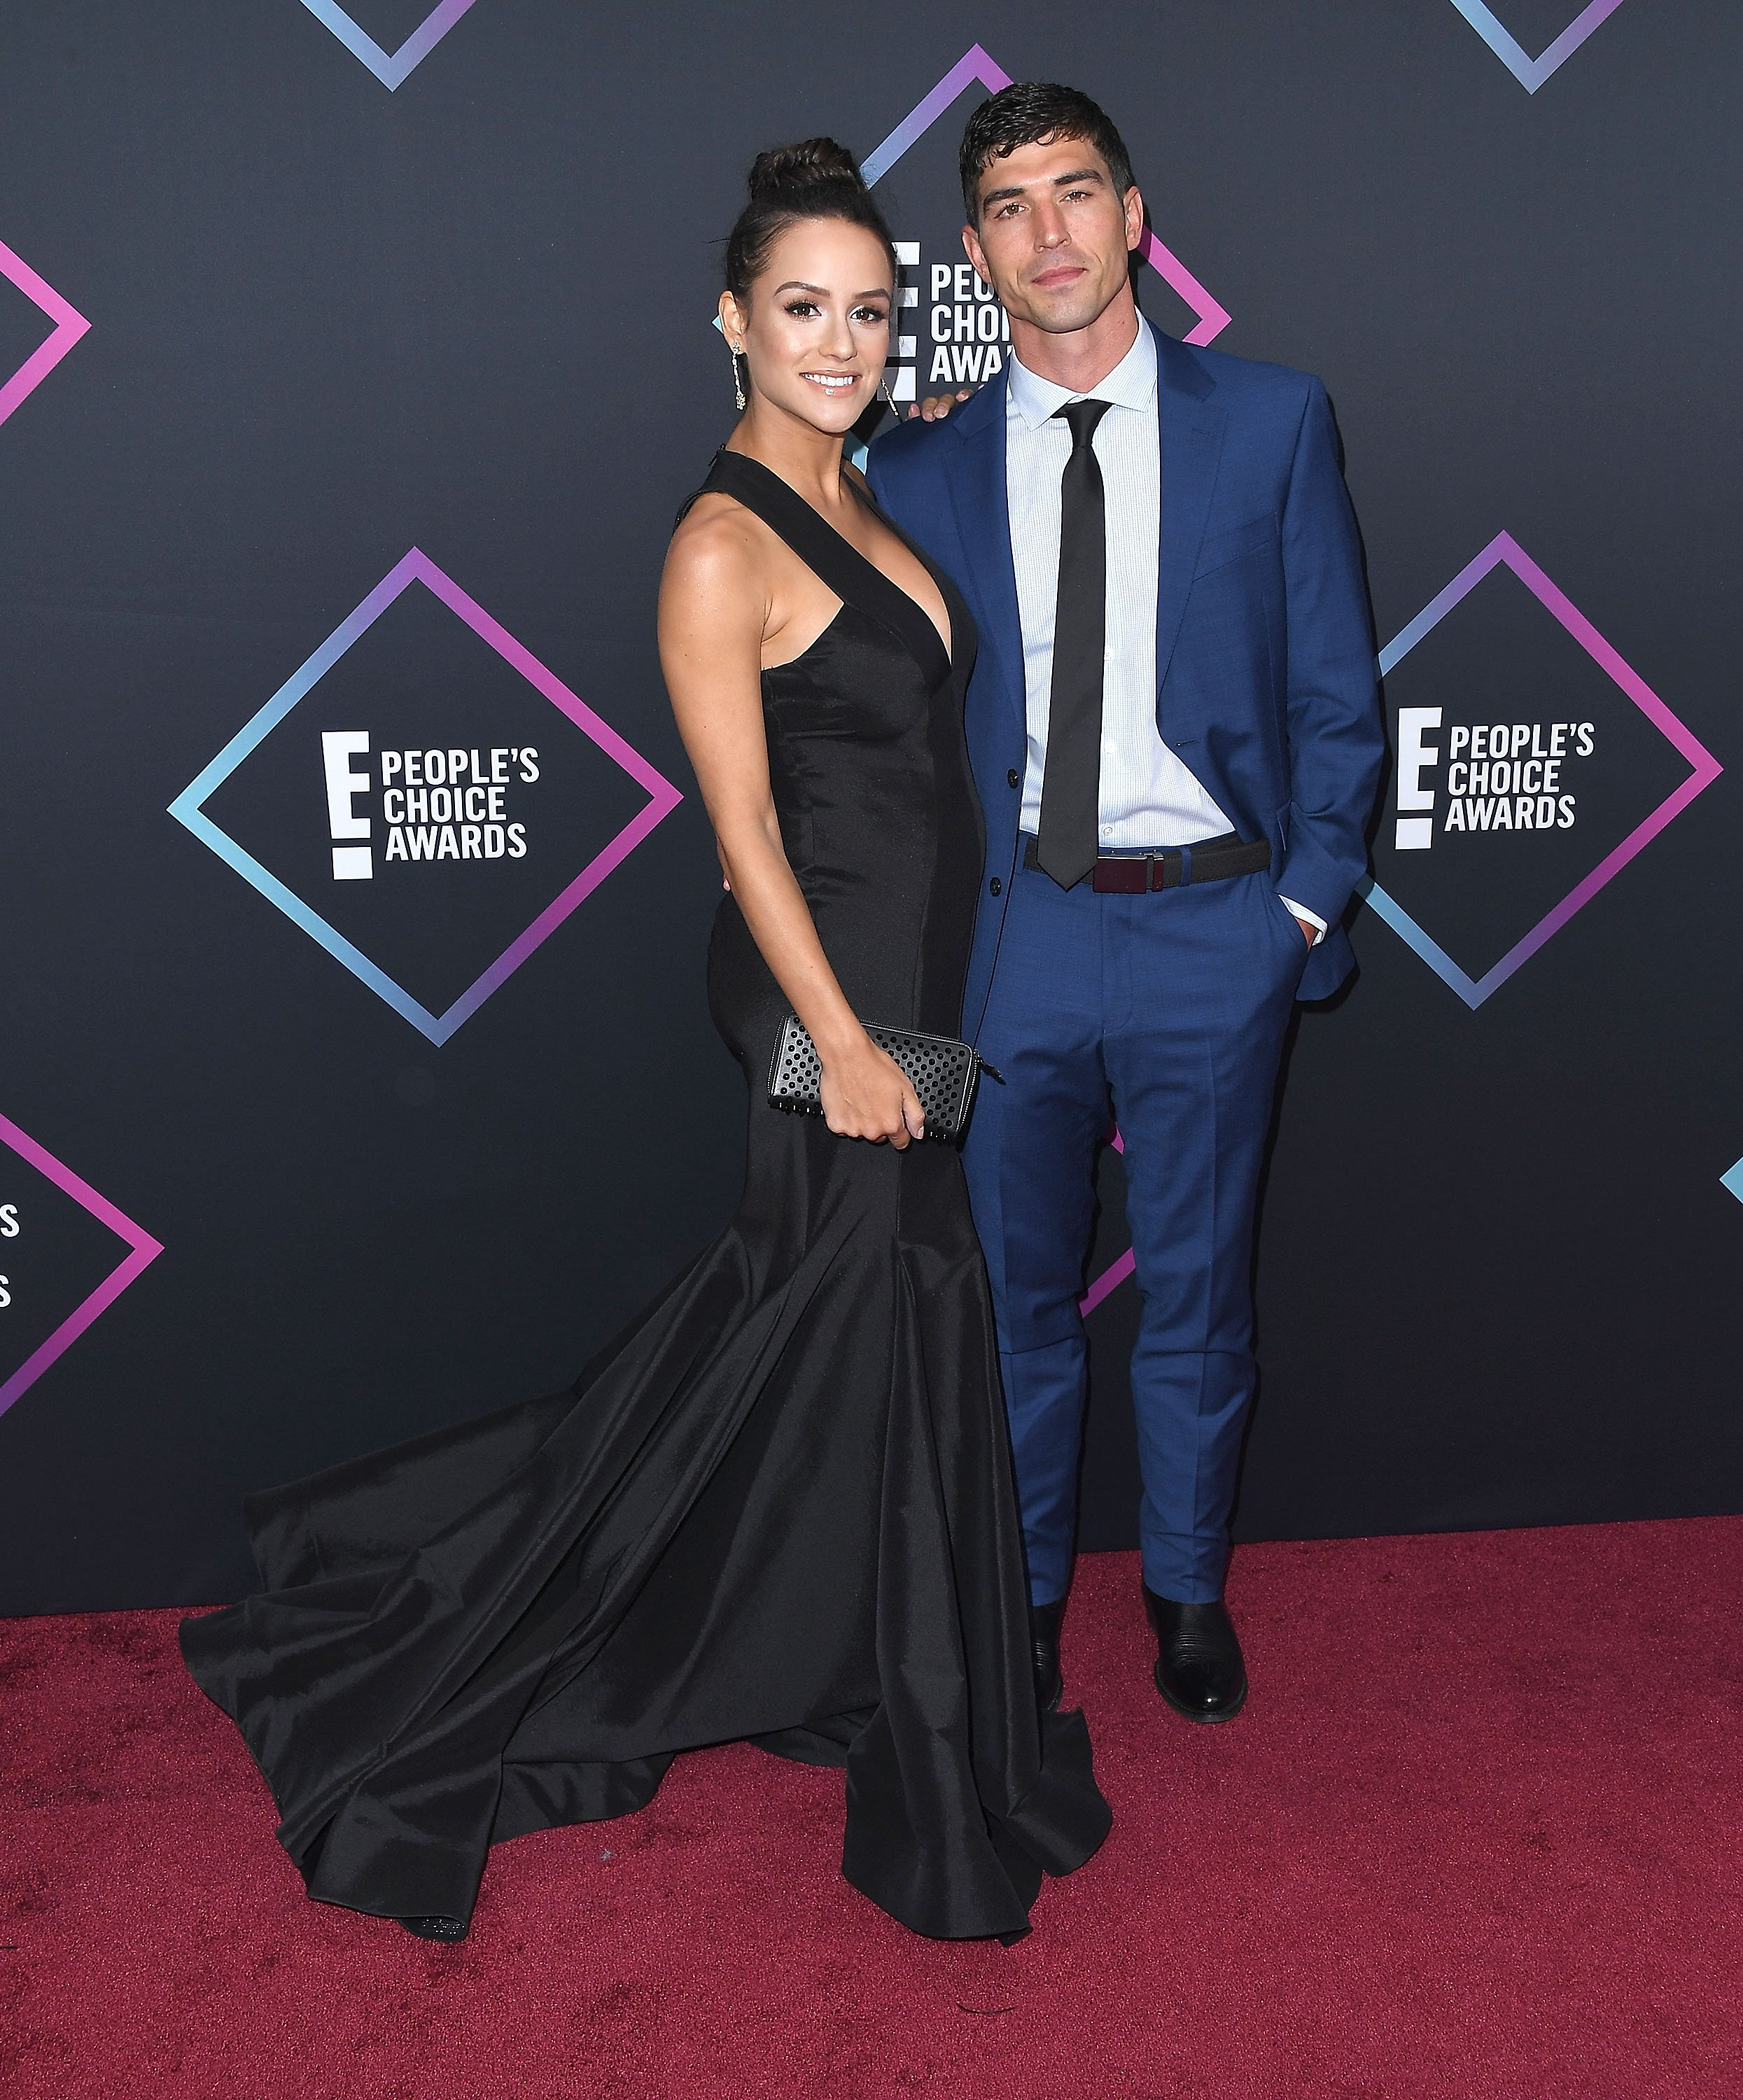 Cody Nickson, Jessica Graf arrives at the People's Choice Awards 2018 at Barker Hangar on November 11, 2018 | Photo: Getty Images